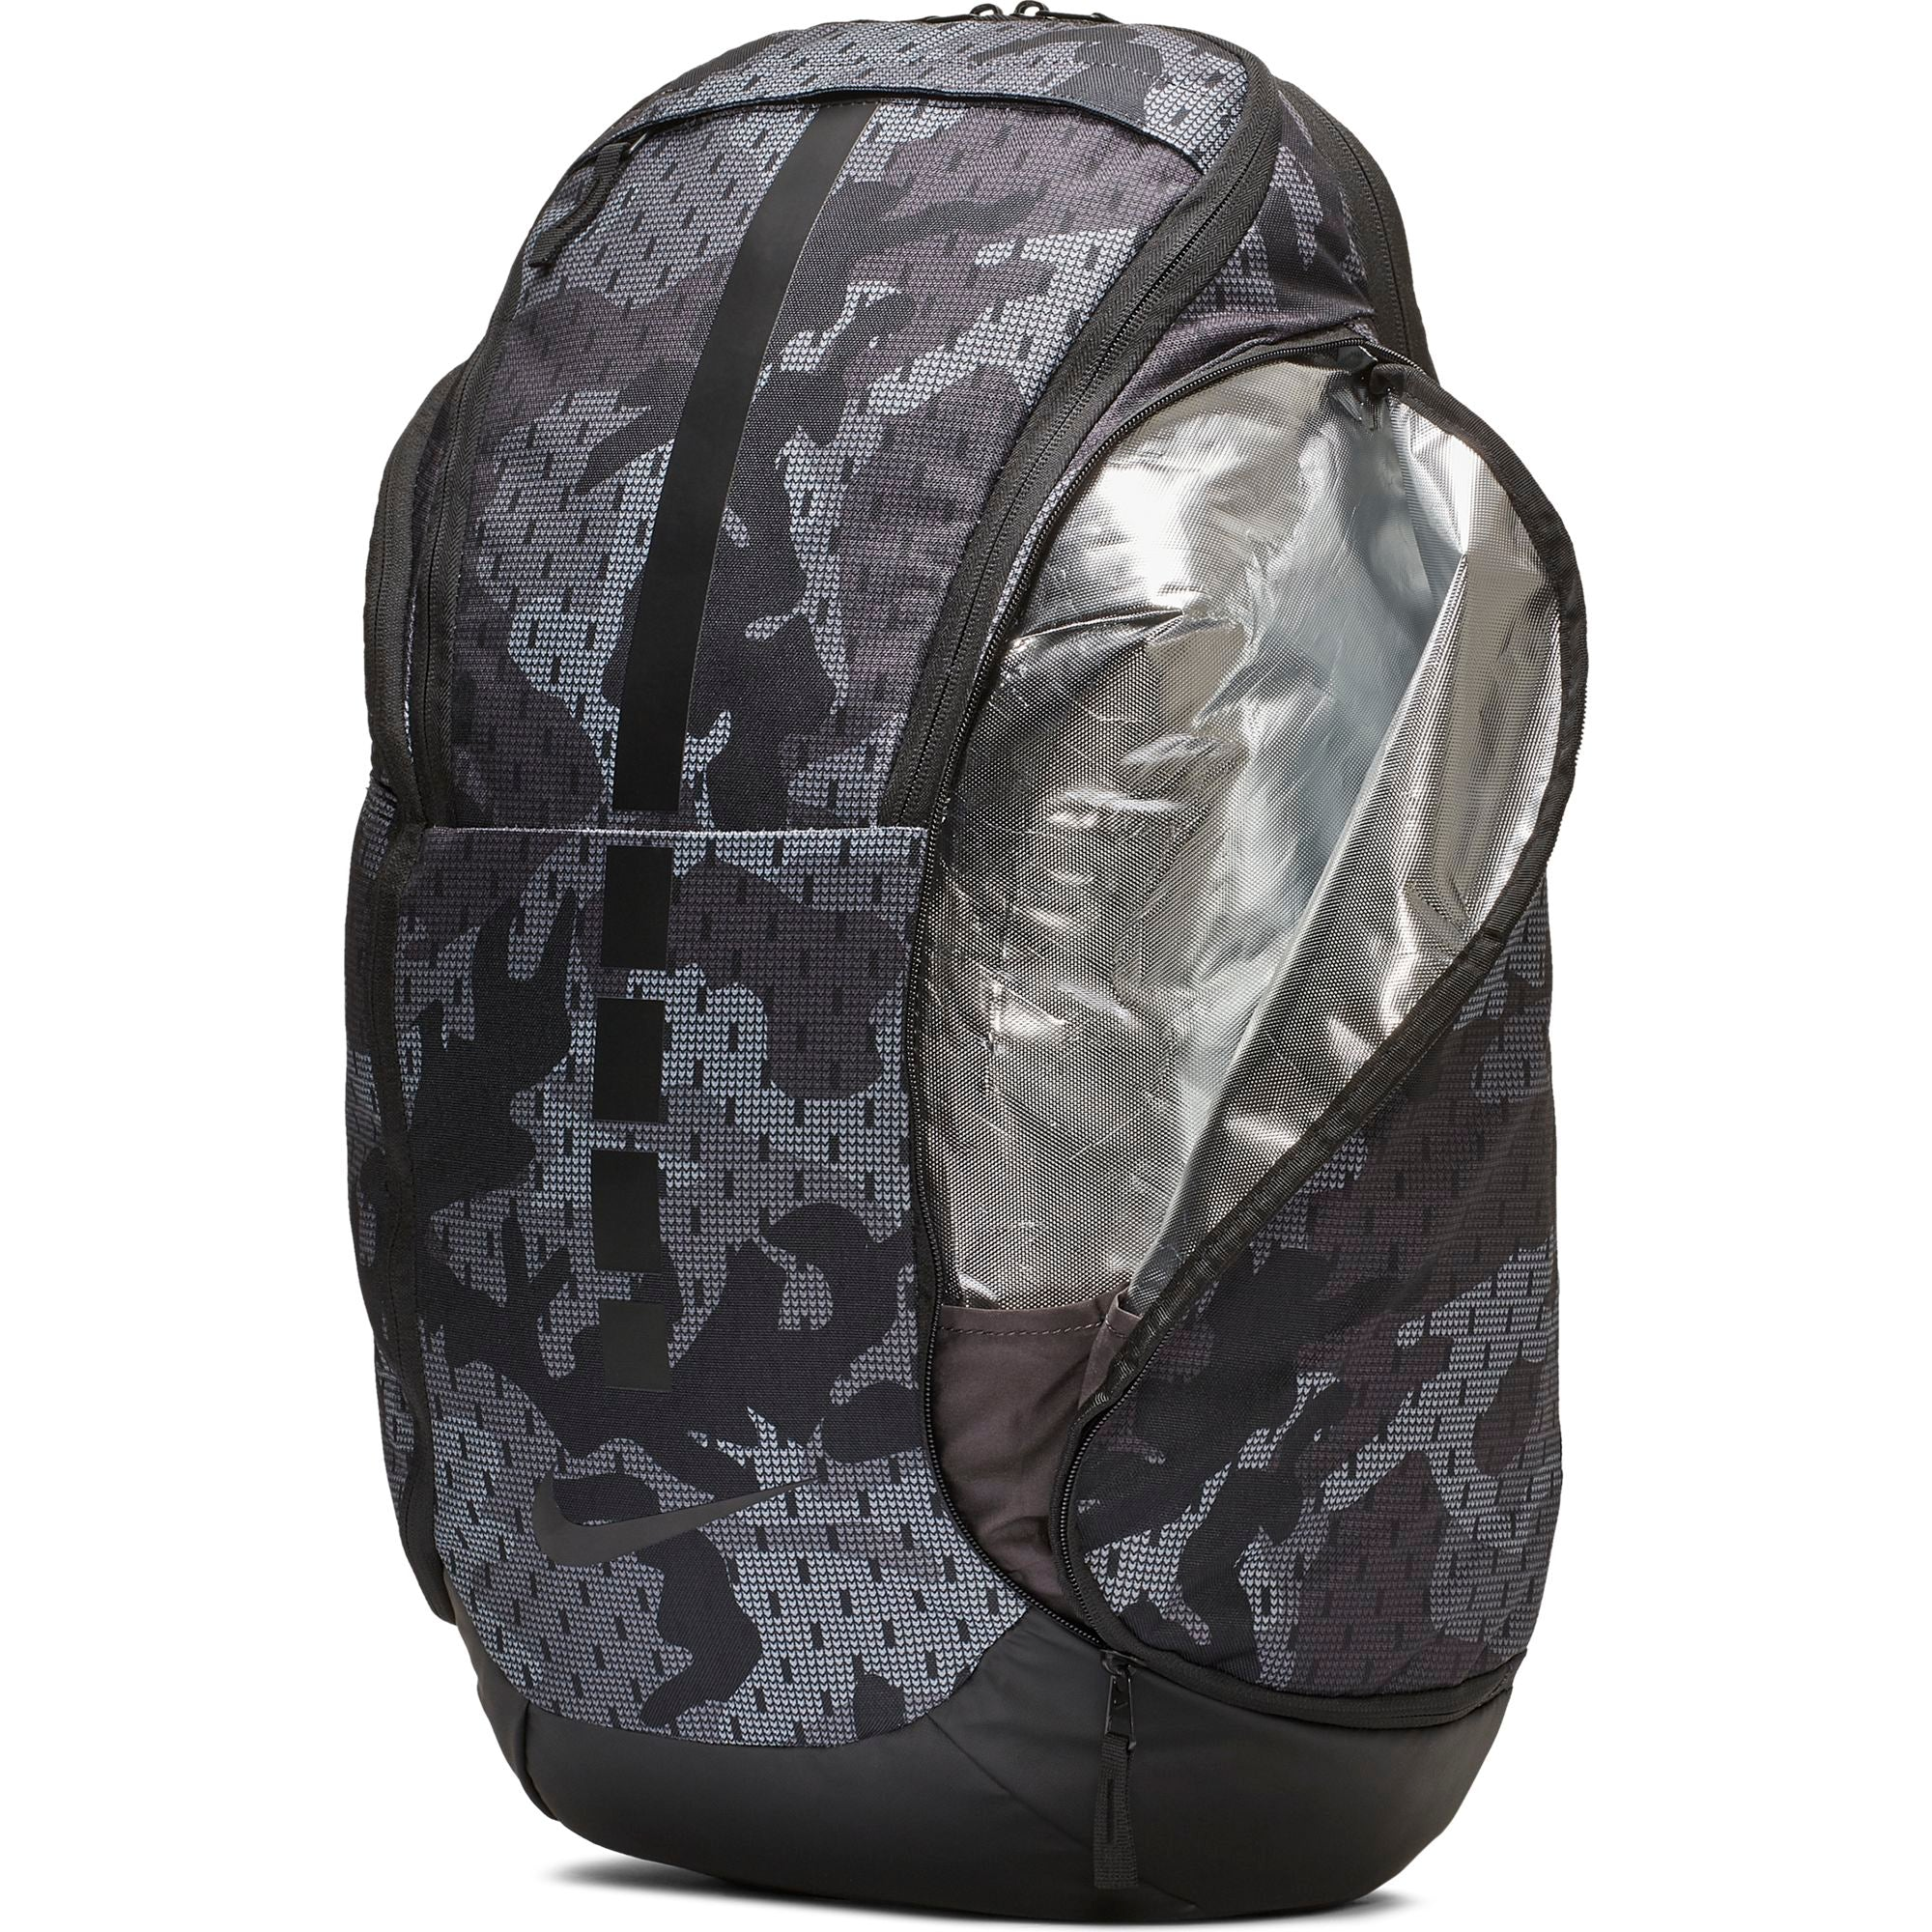 Nike Basketball Hoops Elite Pro Backpack - Thunder Grey/Gunsmoke/Black